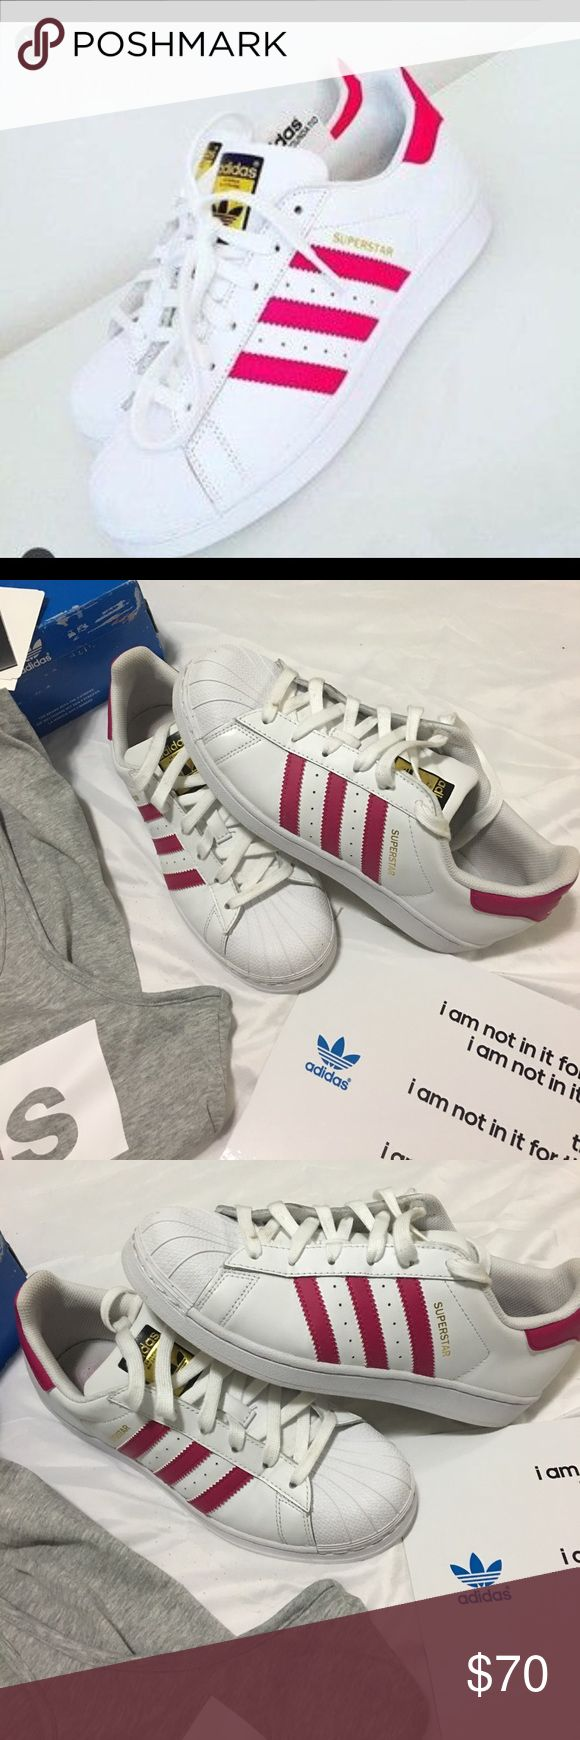 🌸🌺ADIDAS SHELL TOP SUPER STAR SNEAKERS HOT PINK HOT PINK SHELL TOPS . THE FIRST PICTURE IS JUST TO AHOW STYLE PLEASE LOOK AT ALL PICTURES BEFORE BUYING . ASK QUESTIONS. THESE ARE IN EXCELLENT CONDITION. AND THESE SHOES JUST LAST FOREVER. PLEASE ONLY SERIOUS OFFERS THESE ARE A SIZE 6 BUT FIT A 7.5 or 8 adidas Shoes Athletic Shoes